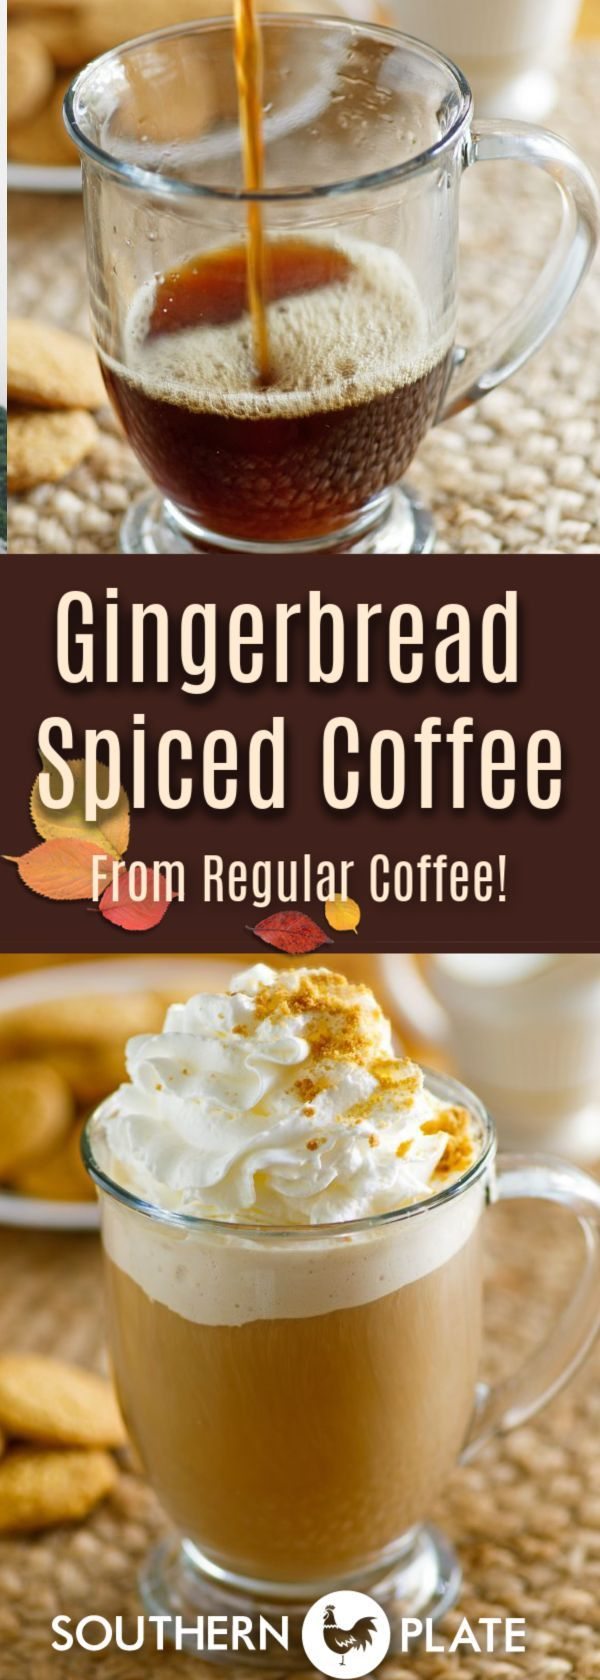 Gingerbread Spiced Coffee using your regular coffee and